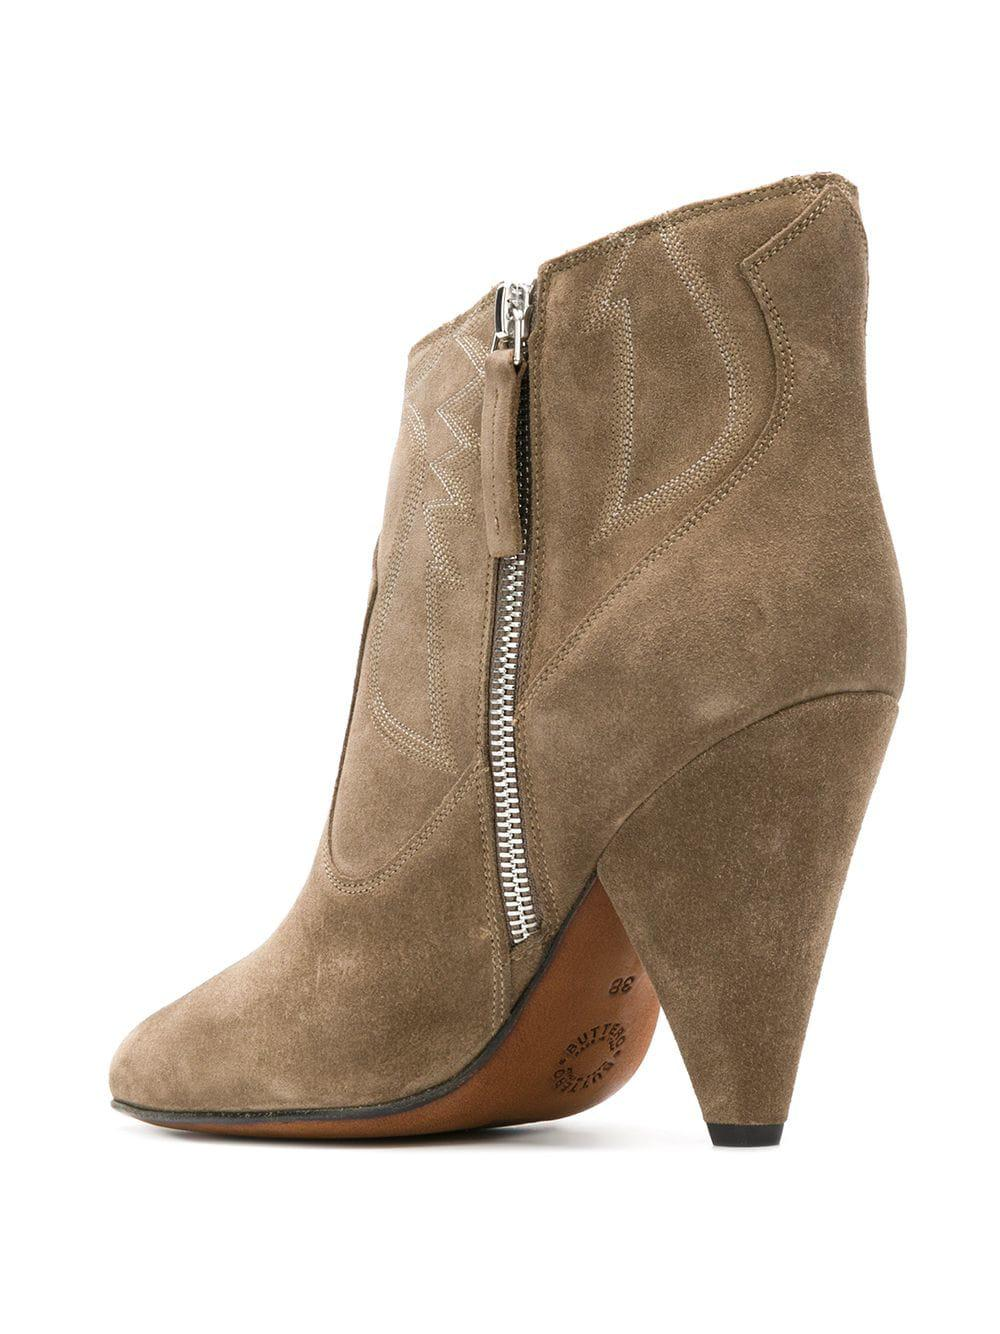 b8c322971edc Buttero Embroidered Sides Ankle Boots in Brown - Lyst